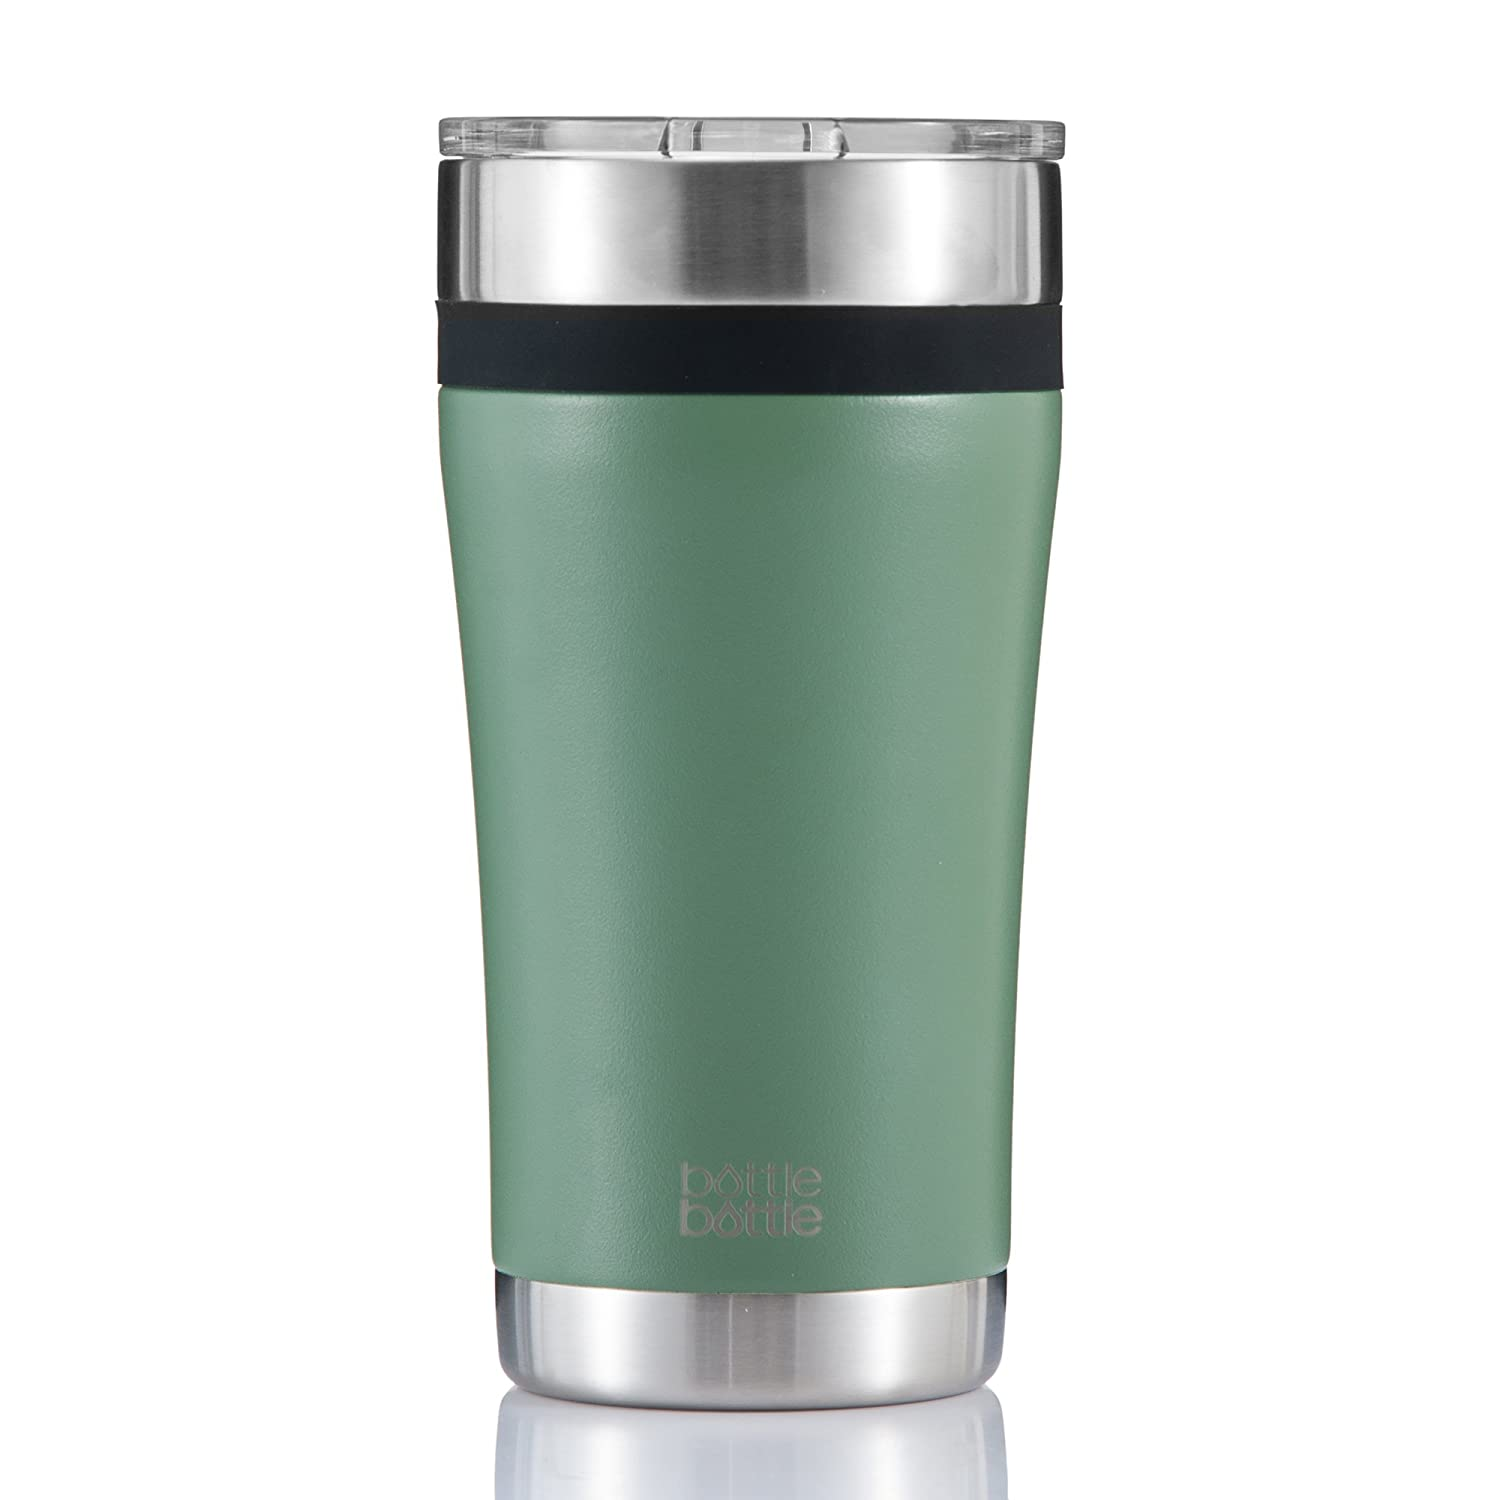 Bottlebottle 20oz Pro Stainless Steel Vacuum Insulated Tumbler, Double Walled Travel Coffee Cup, Powder Coated - Hunter Green AB007-20-2